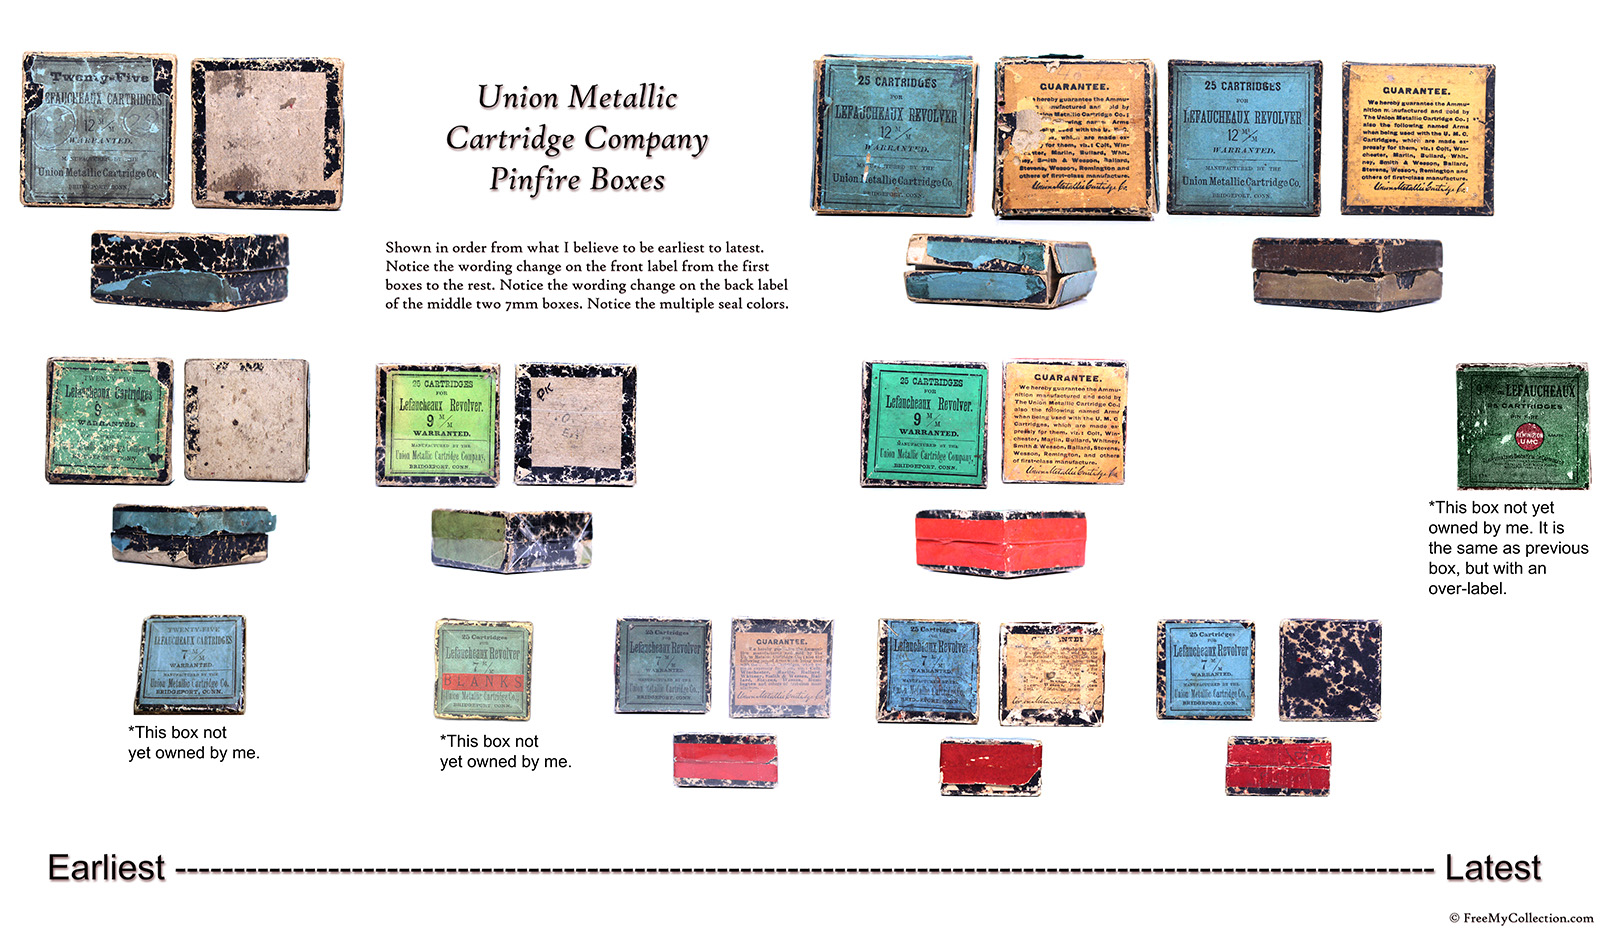 Union Metallic Cartridge Company (UMC) Pinfire boxes